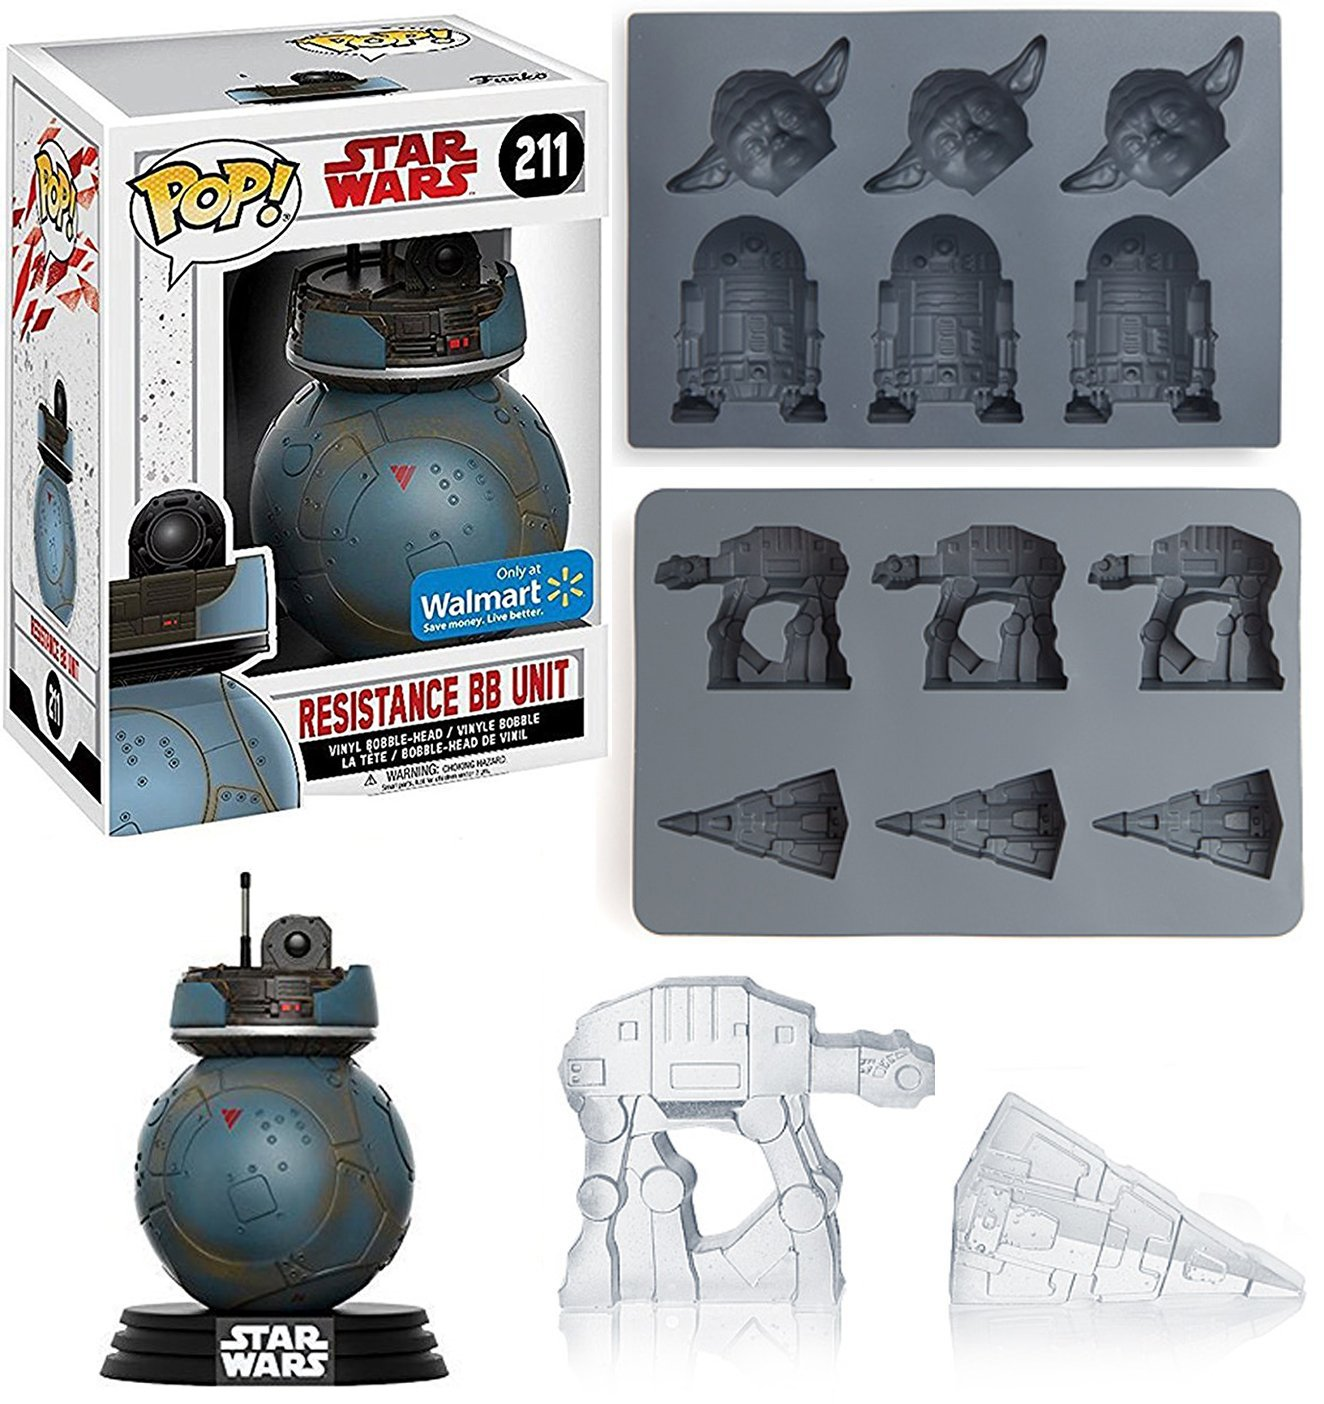 Star Wars Ice Cube Tray 2 Pack Yoda & R2-D2 Droid Character mold/AT-AT/Star Destroyer + BB Unit Figure Exclusive Character Fun Cars